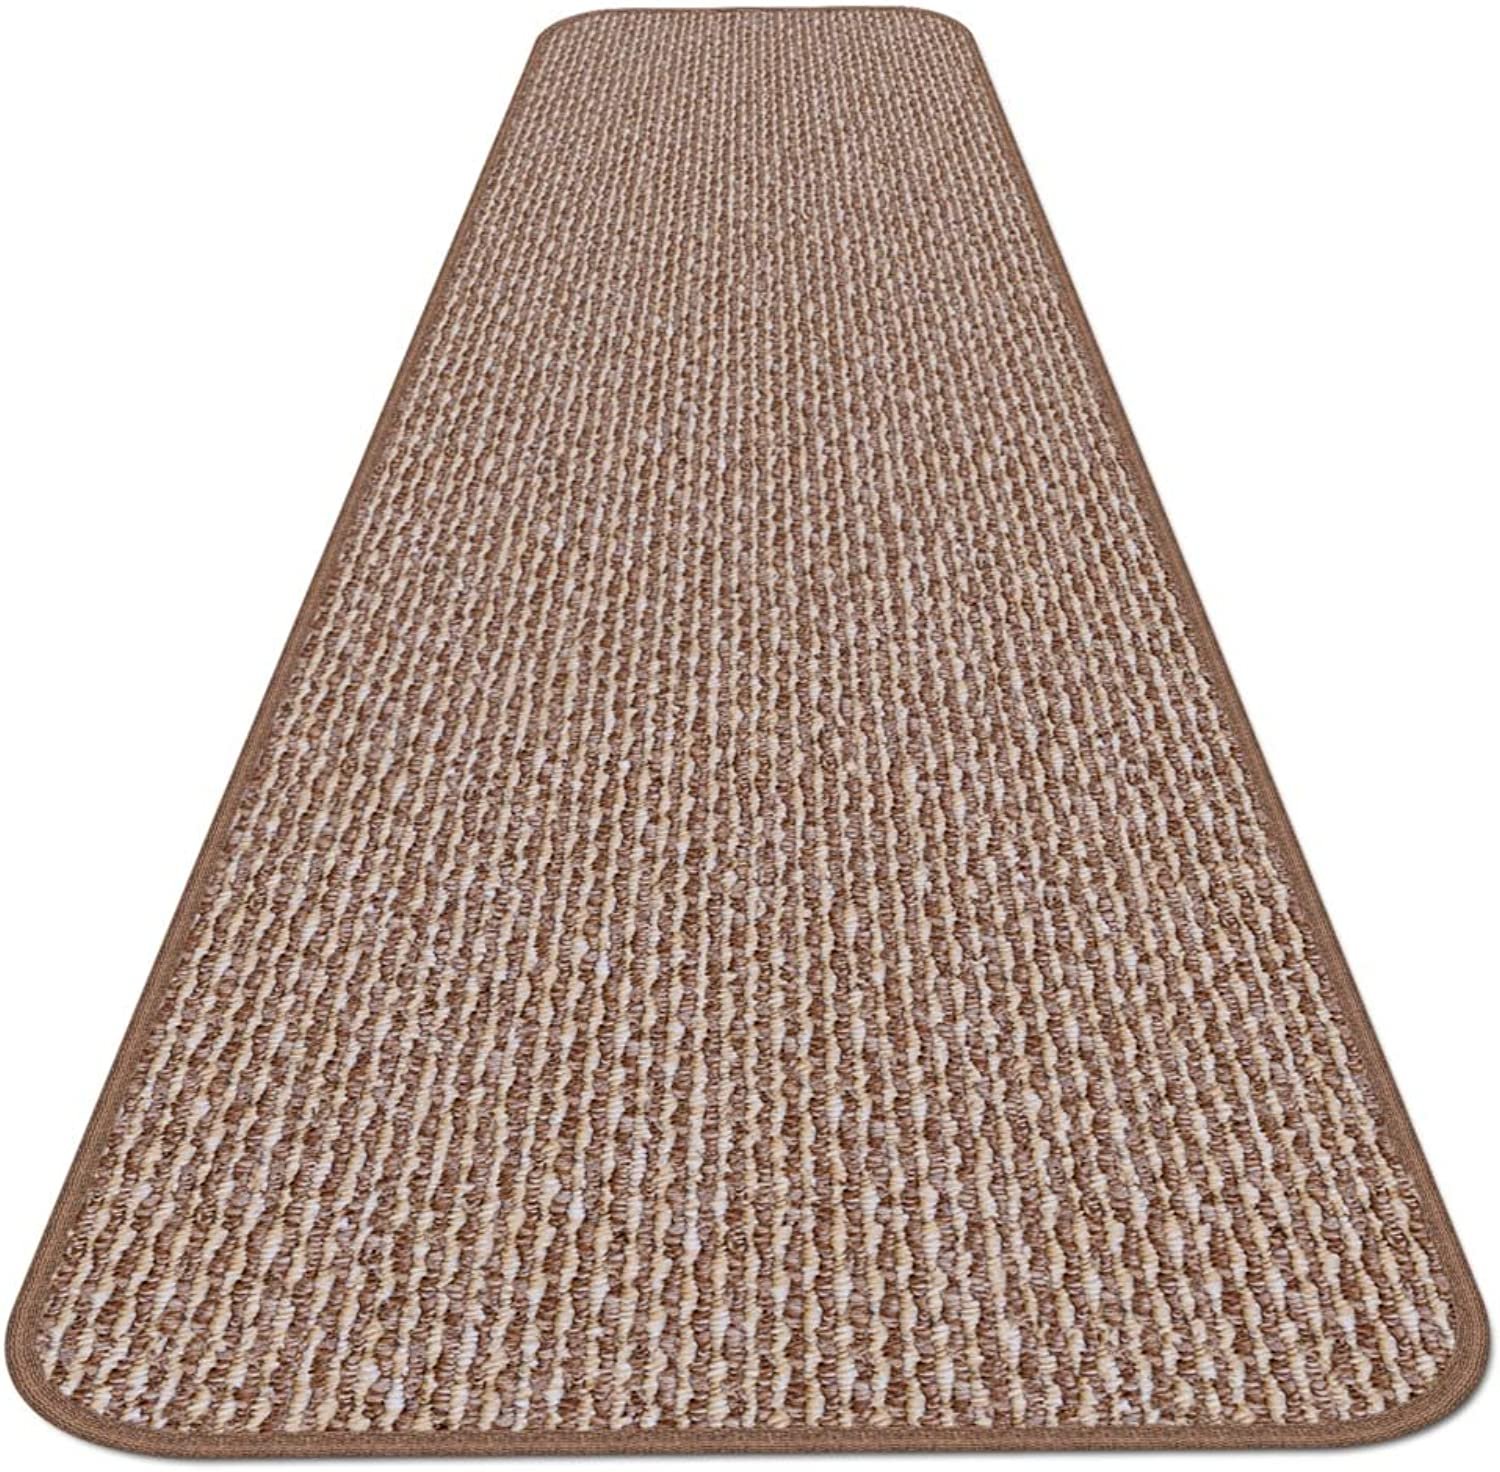 House, Home and More Skid-resistant Carpet Runner - Praline Brown - 10 Ft. X 27 In. - Many Other Sizes to Choose From